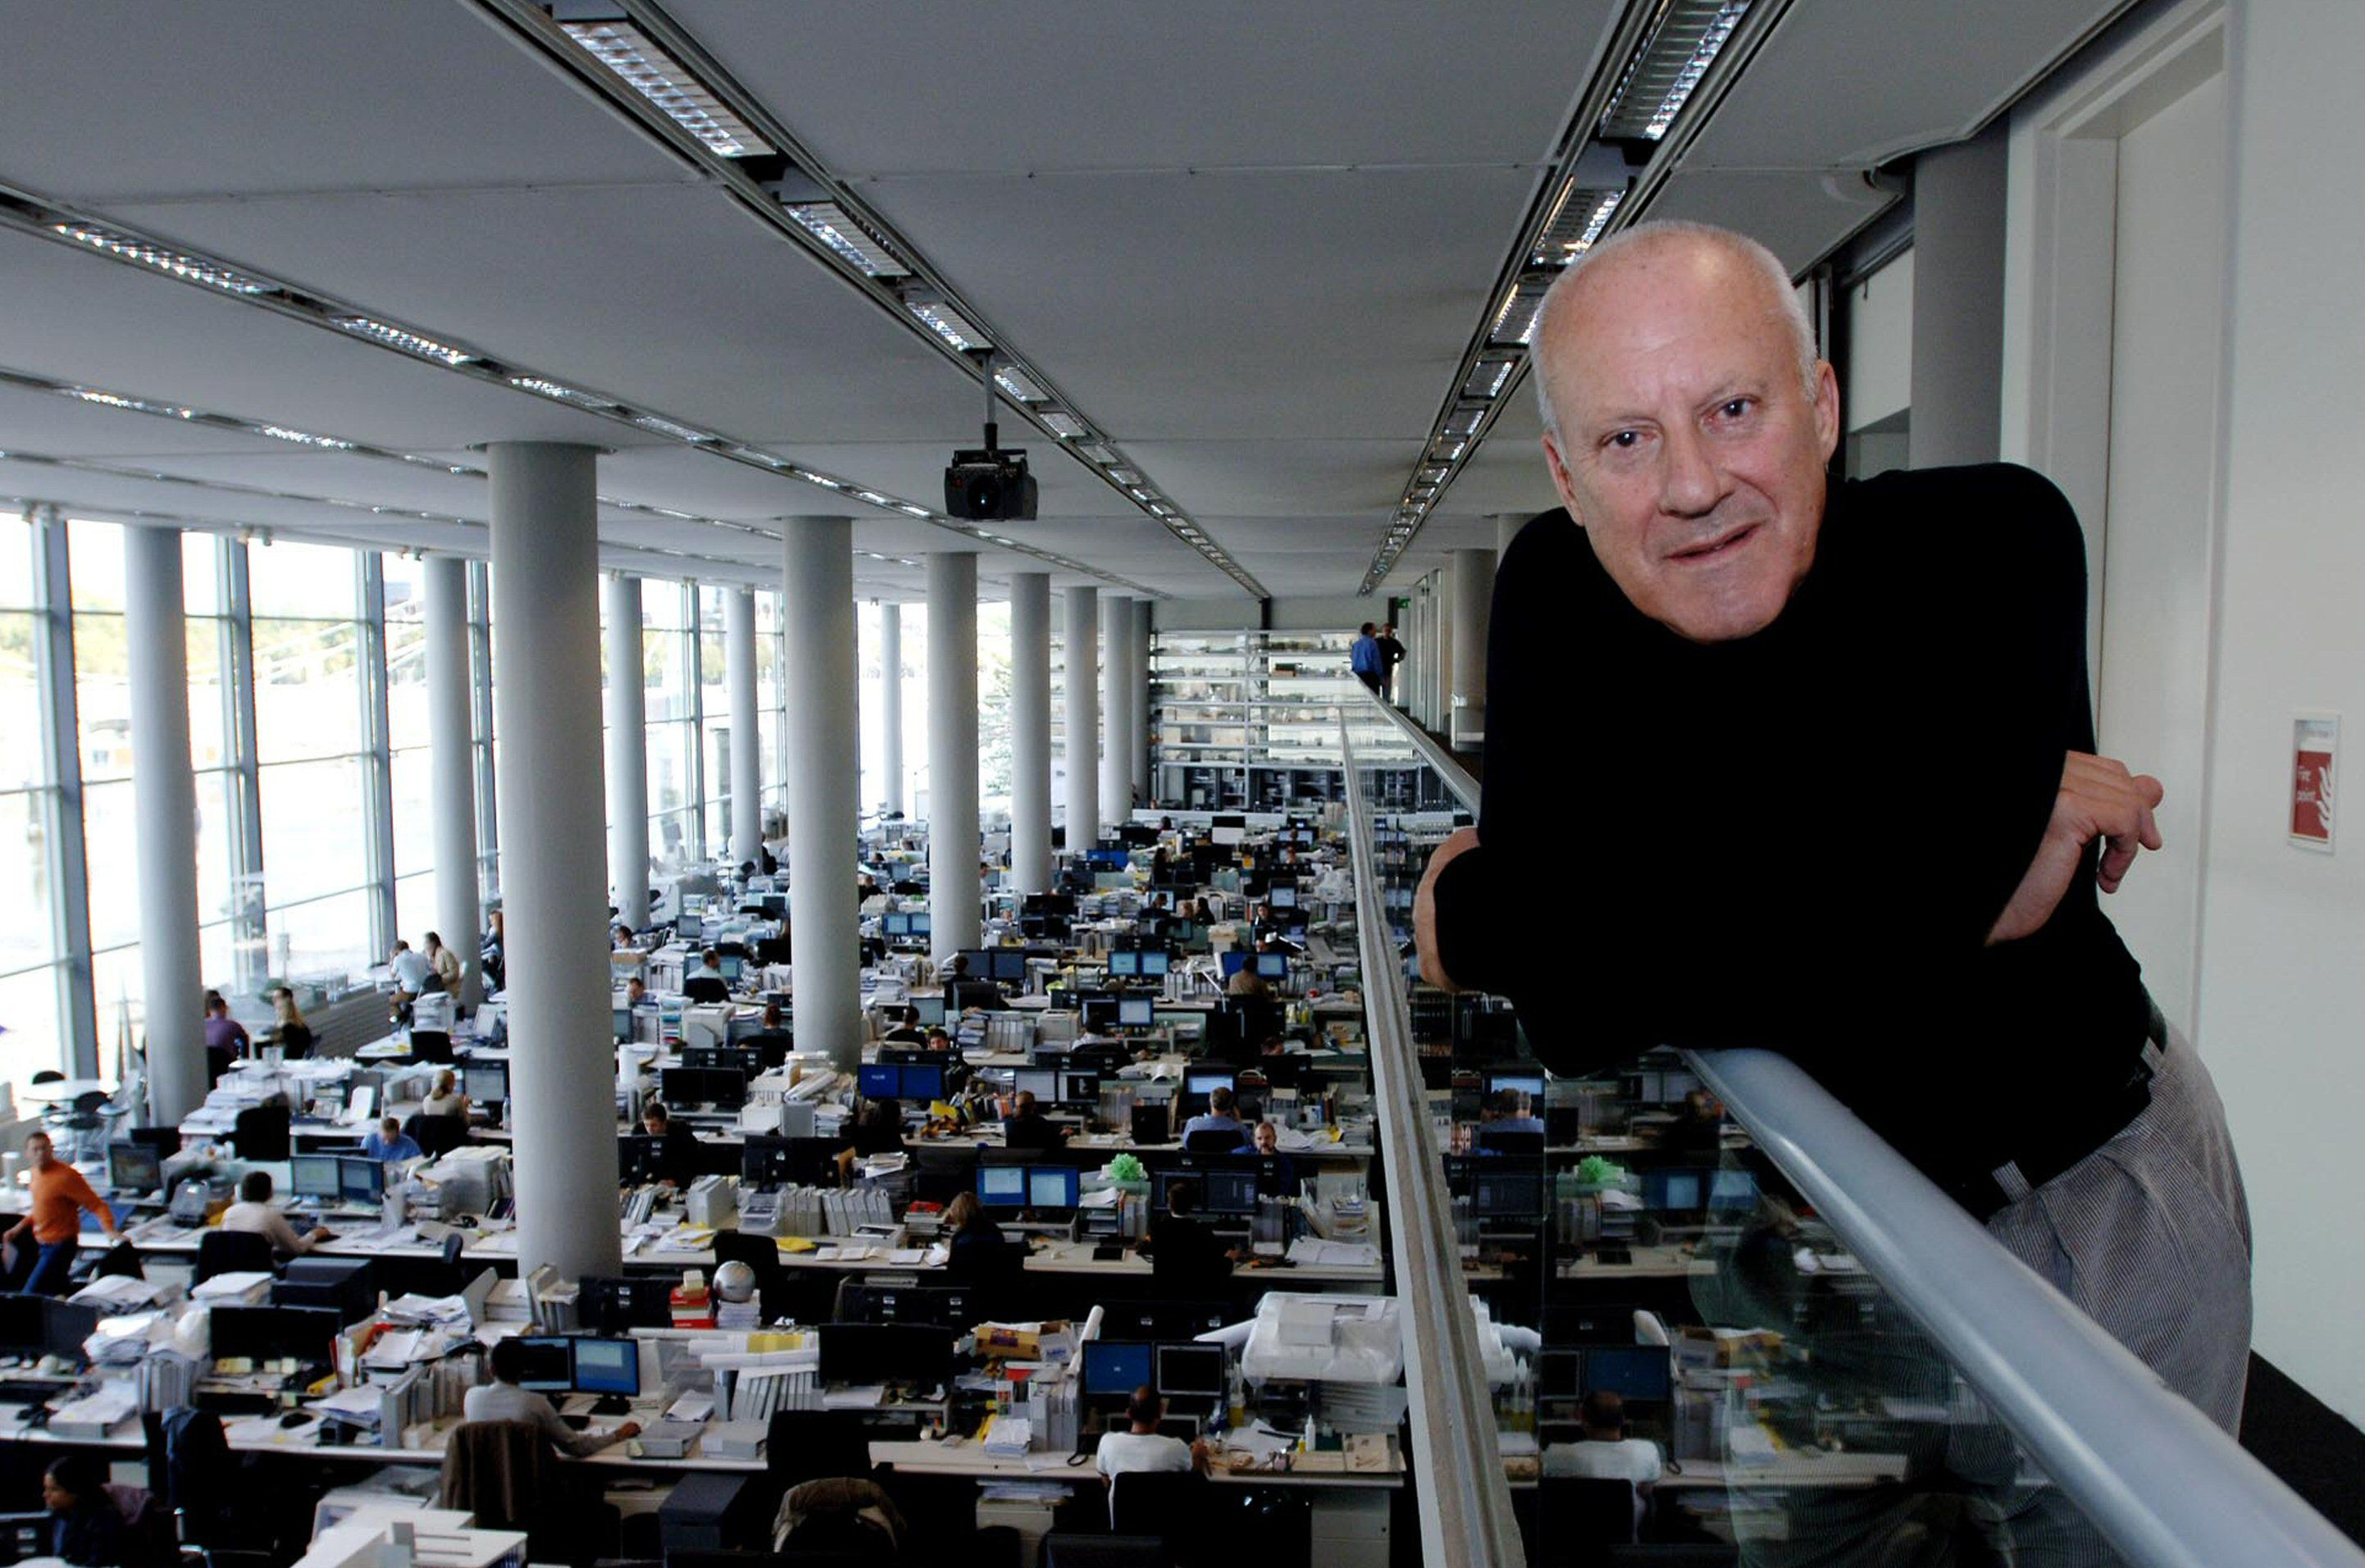 About norman foster and britain 39 s modern architecture - Forster architekt ...